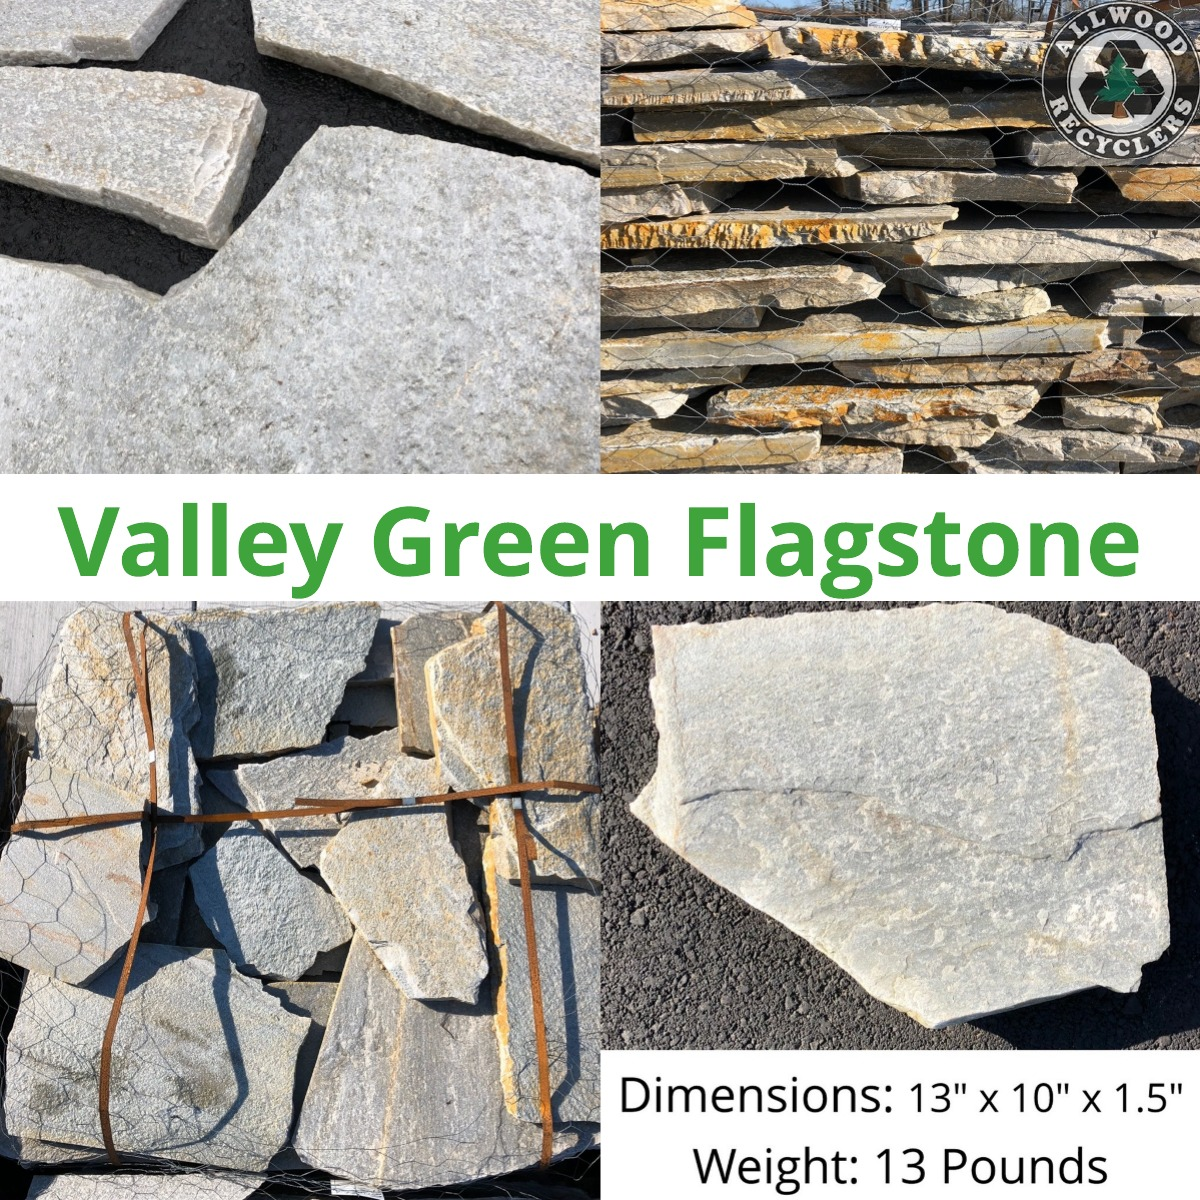 Valley Green Flagstone